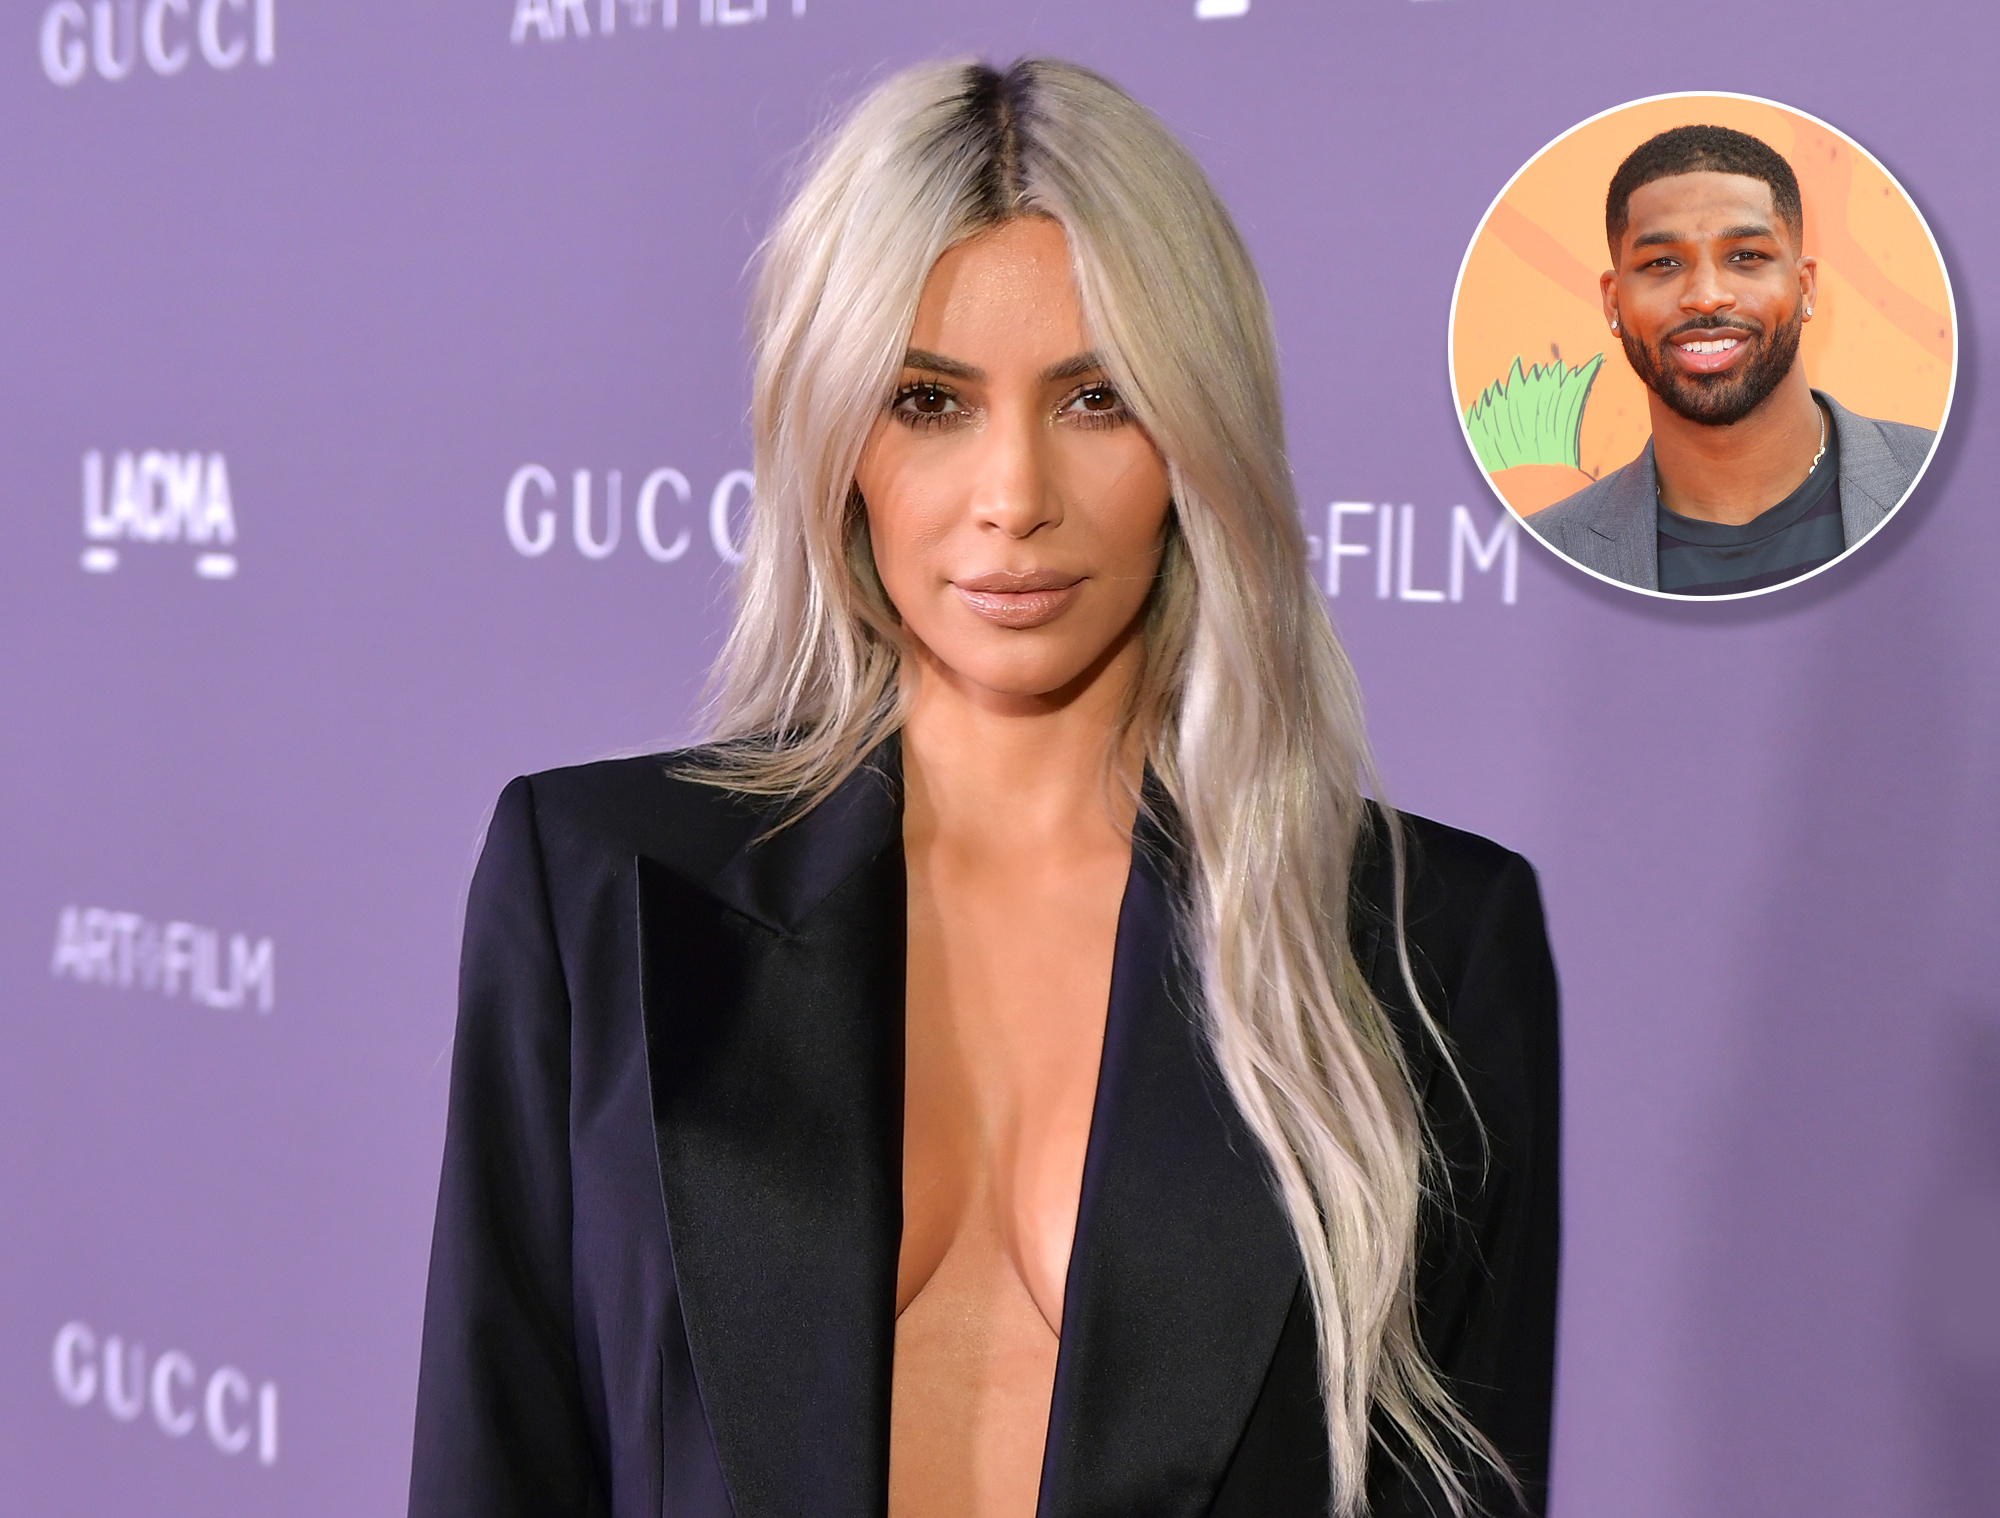 Tristan Thompson breaks Instagram silence amid cheating scandal